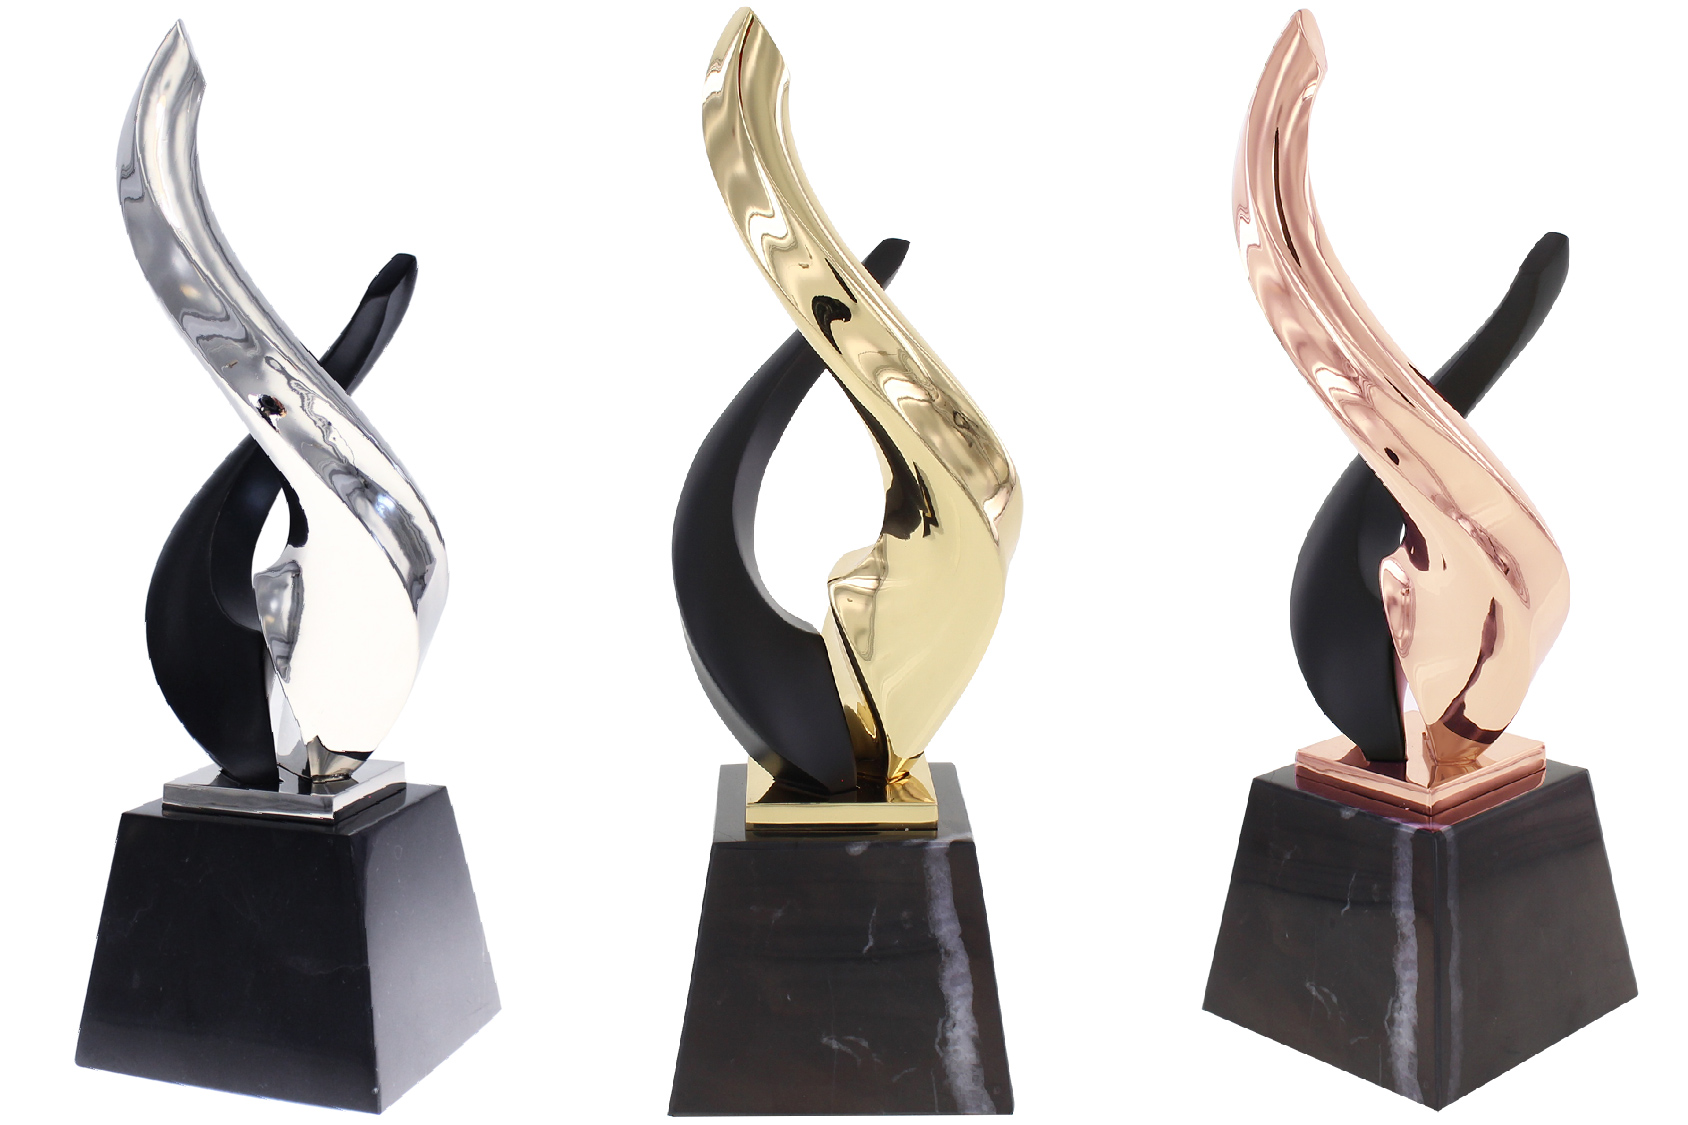 Three metal and marble trophies in gold, silver and bronze